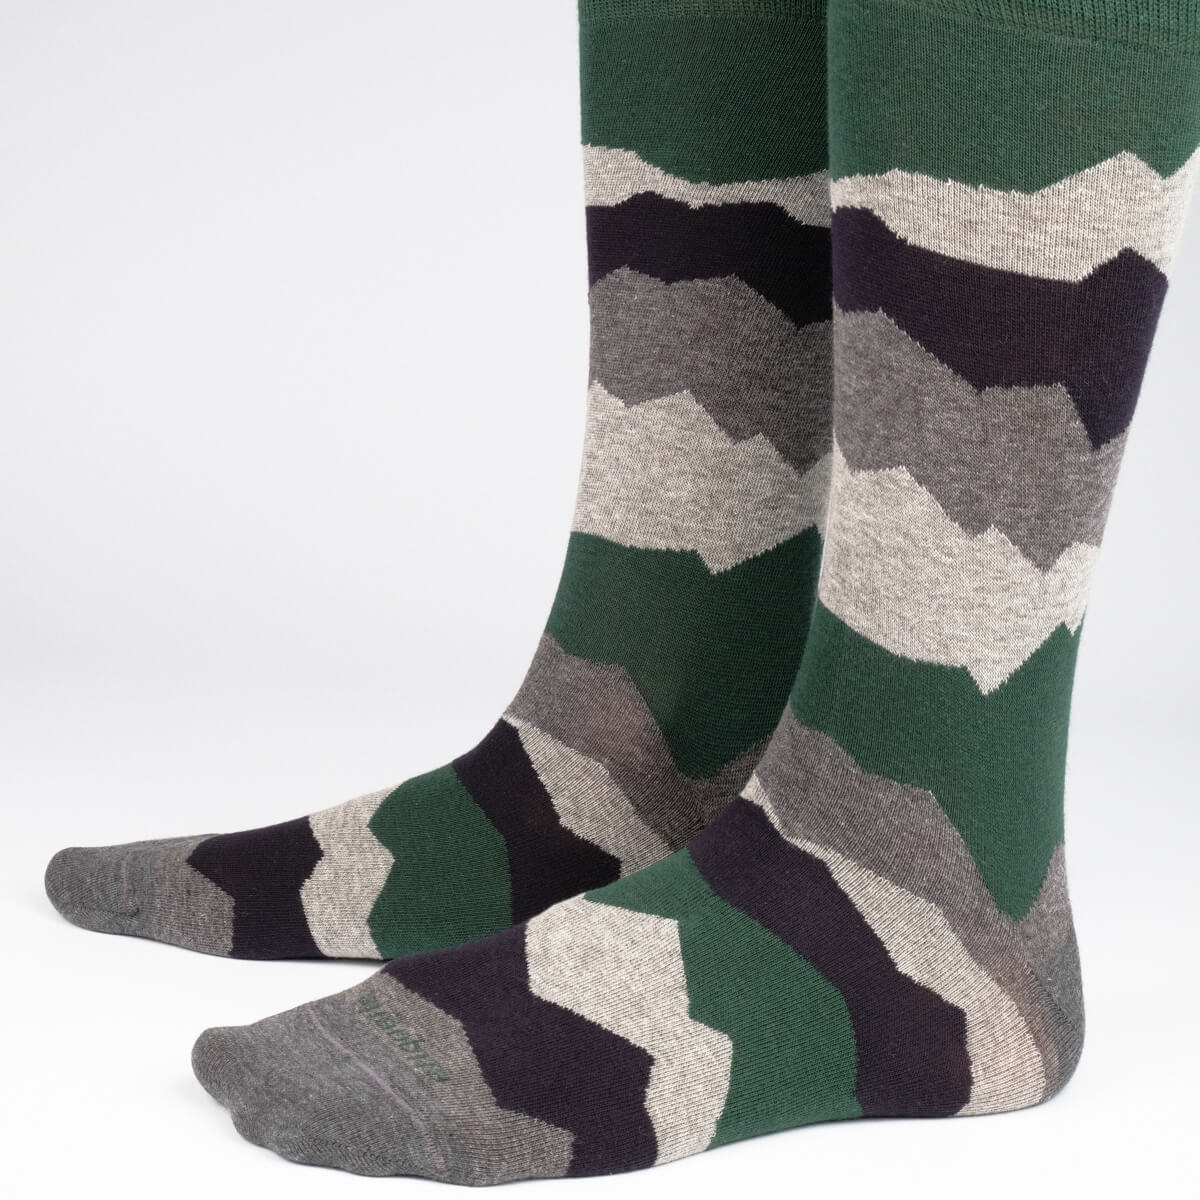 Mens Socks - Seismic Men's Socks - Green⎪Etiquette Clothiers